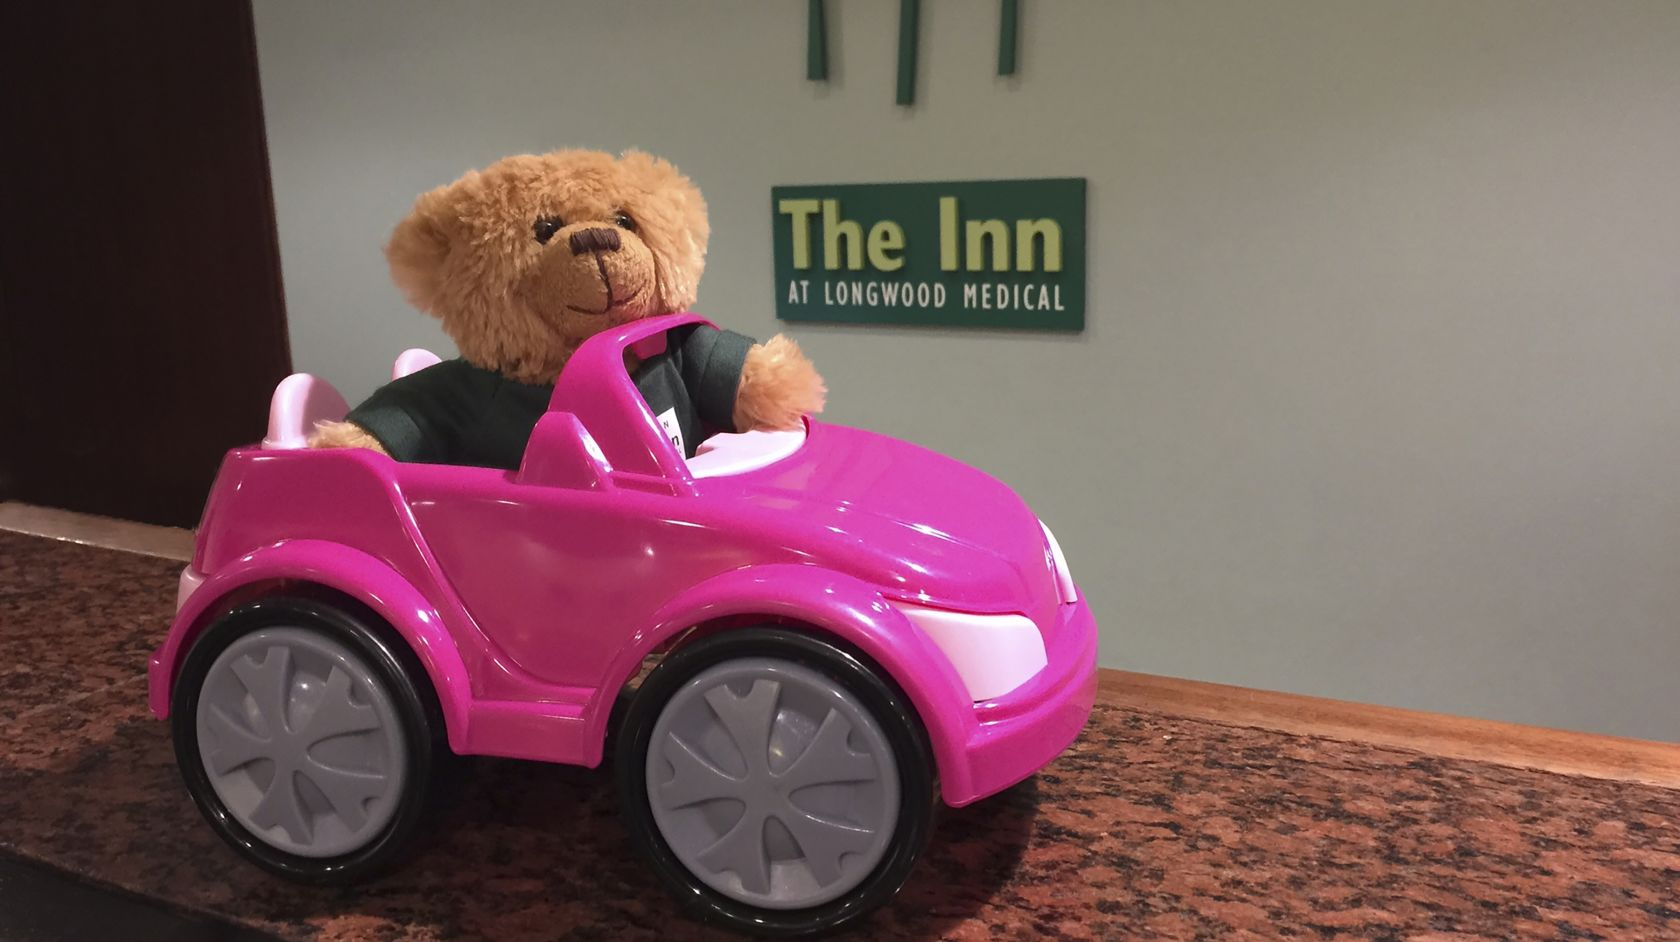 hope the teddy bear in a toy car on the front desk